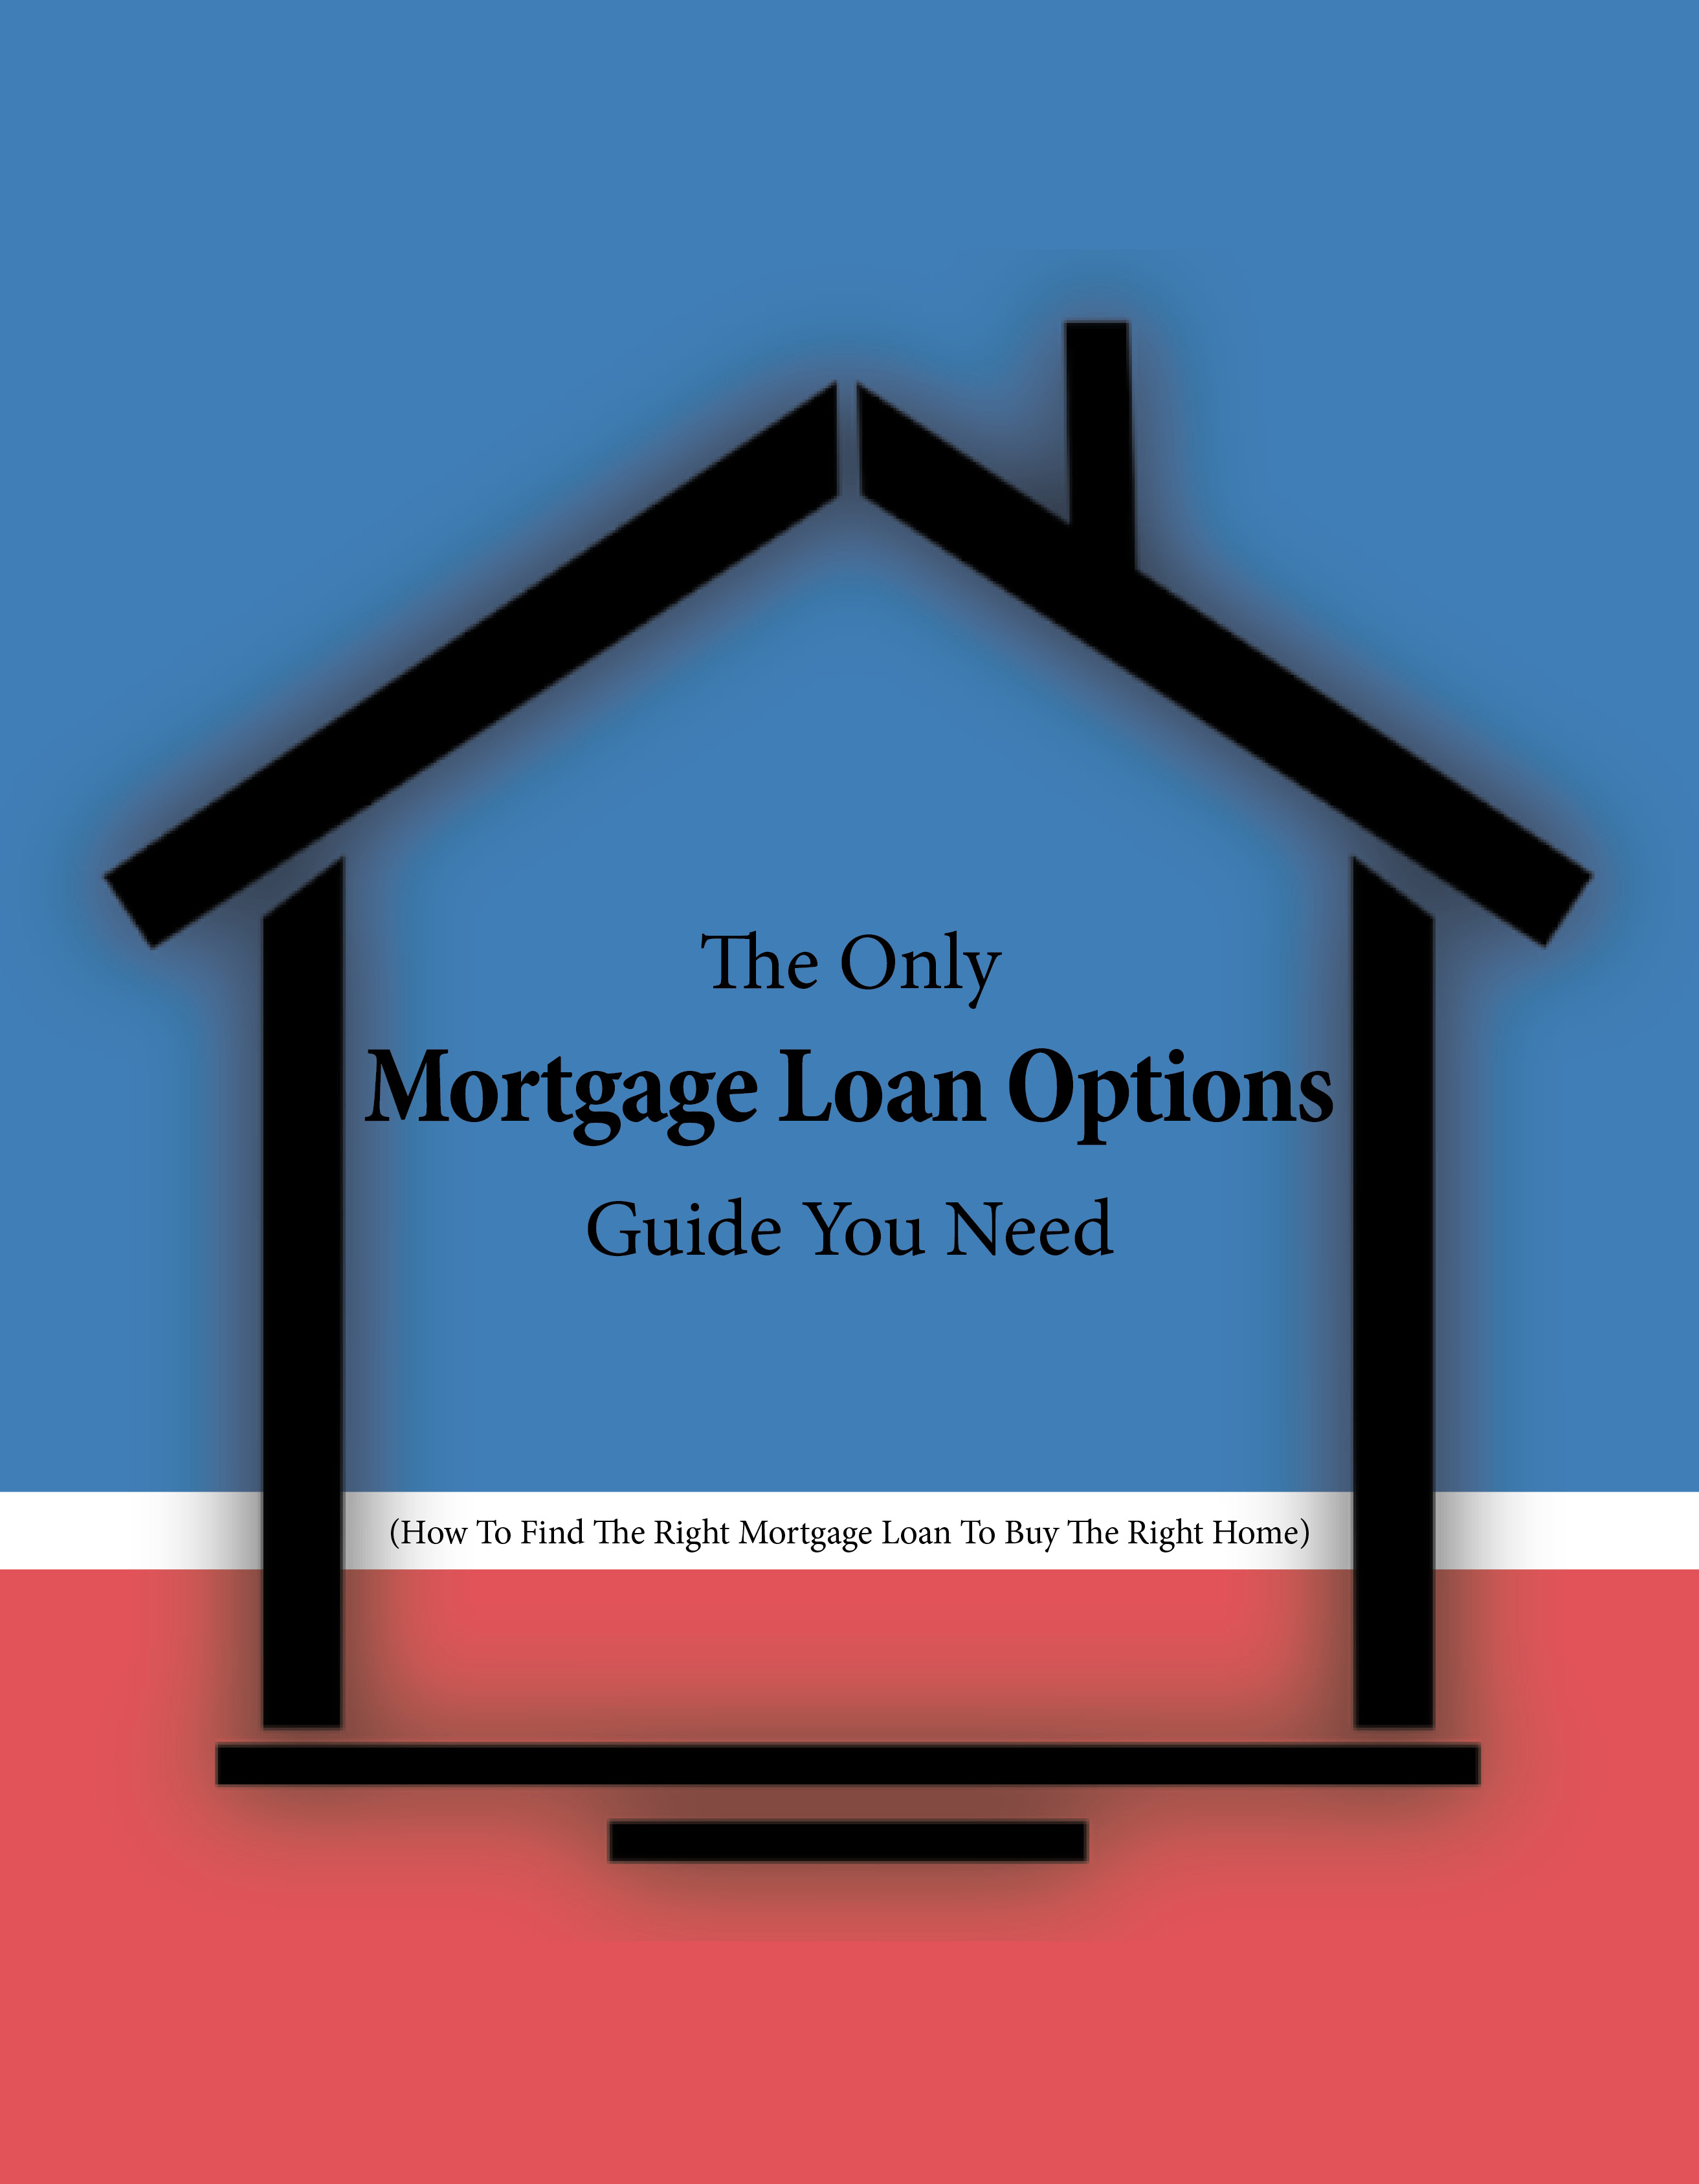 the-only-mortgage-loan-options-guide-you-need1